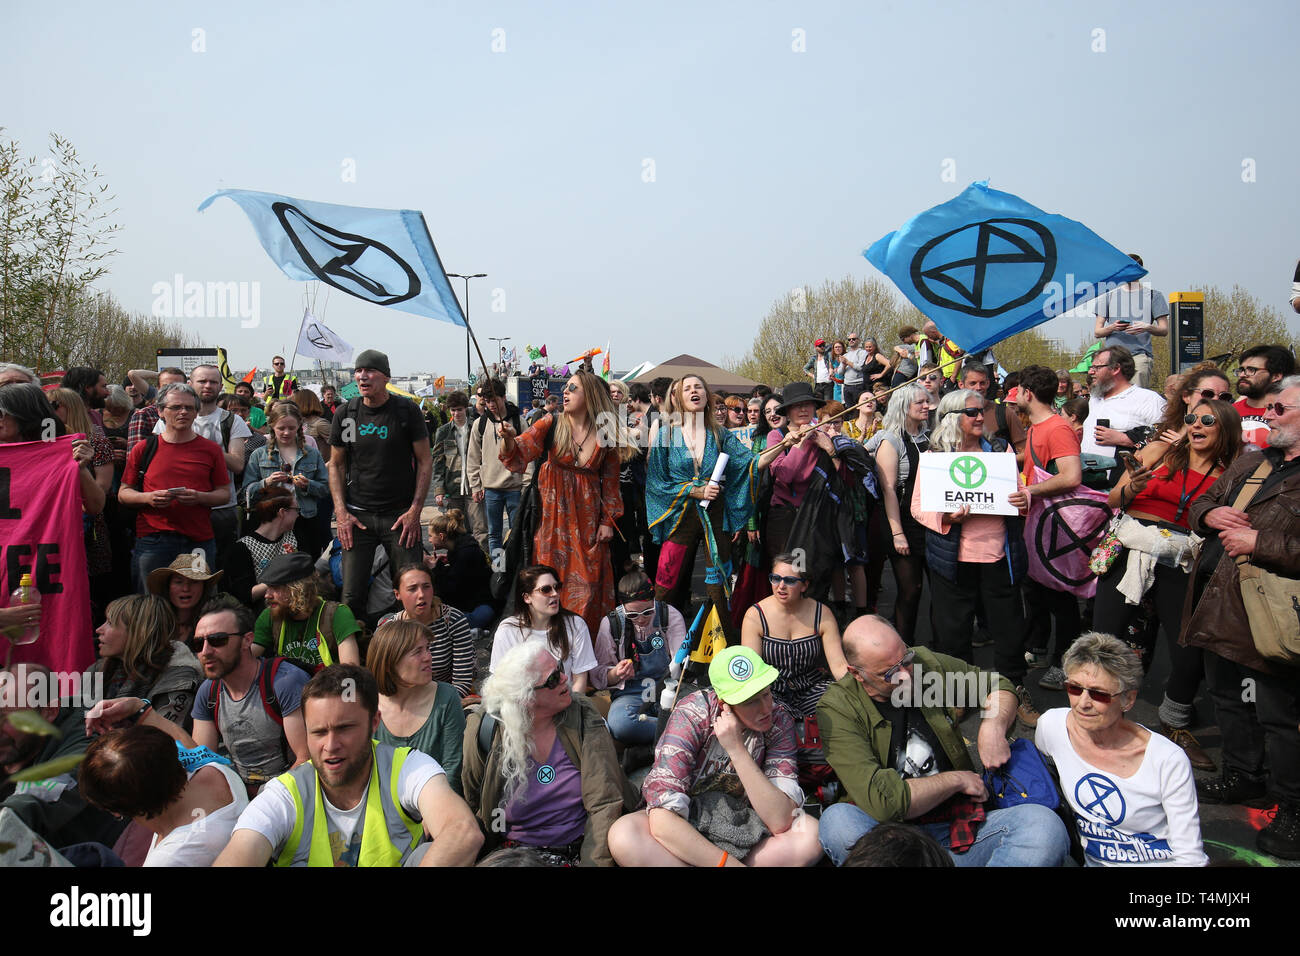 Extinction Rebellion demonstrators on Waterloo Bridge, London, after police issued a Section 14 Public Order Act 1986 warning. - Stock Image